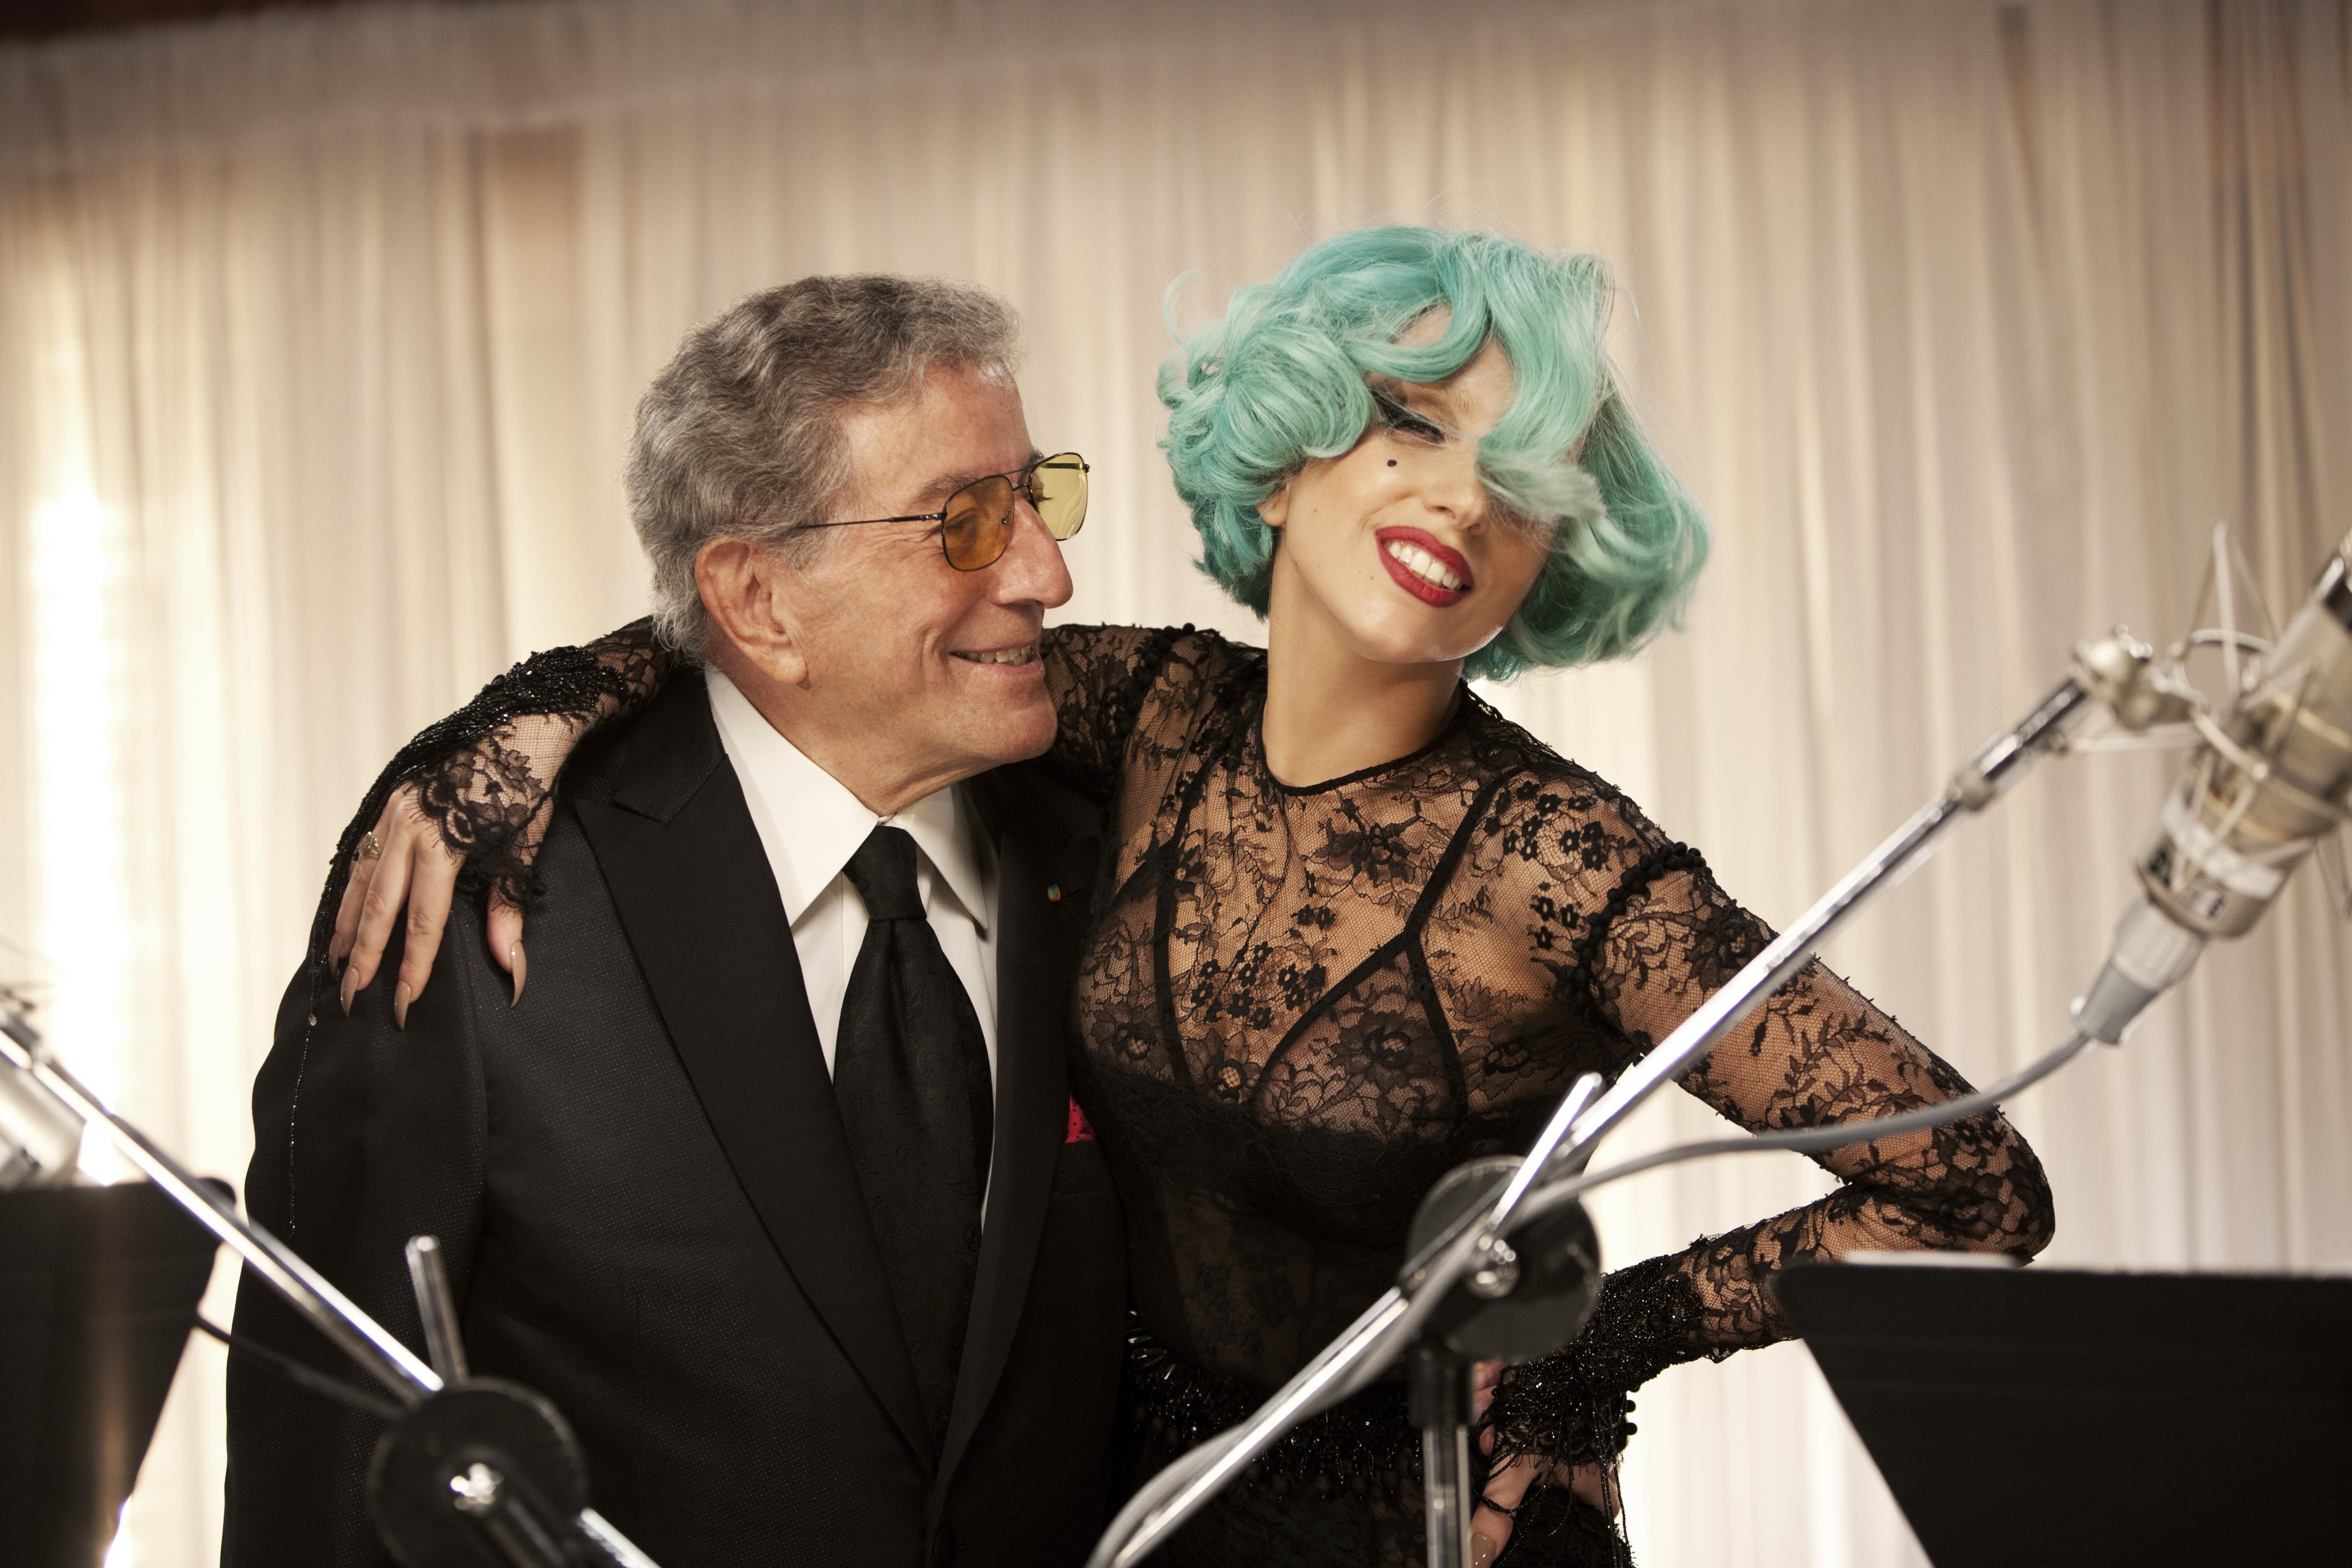 Tony Bennett Sings W The Likes Of Lady Gaga John Mayer Michael Buble More 3 1 At 8 P M On Eight Lady Gaga Images Lady Gaga Tony Bennett